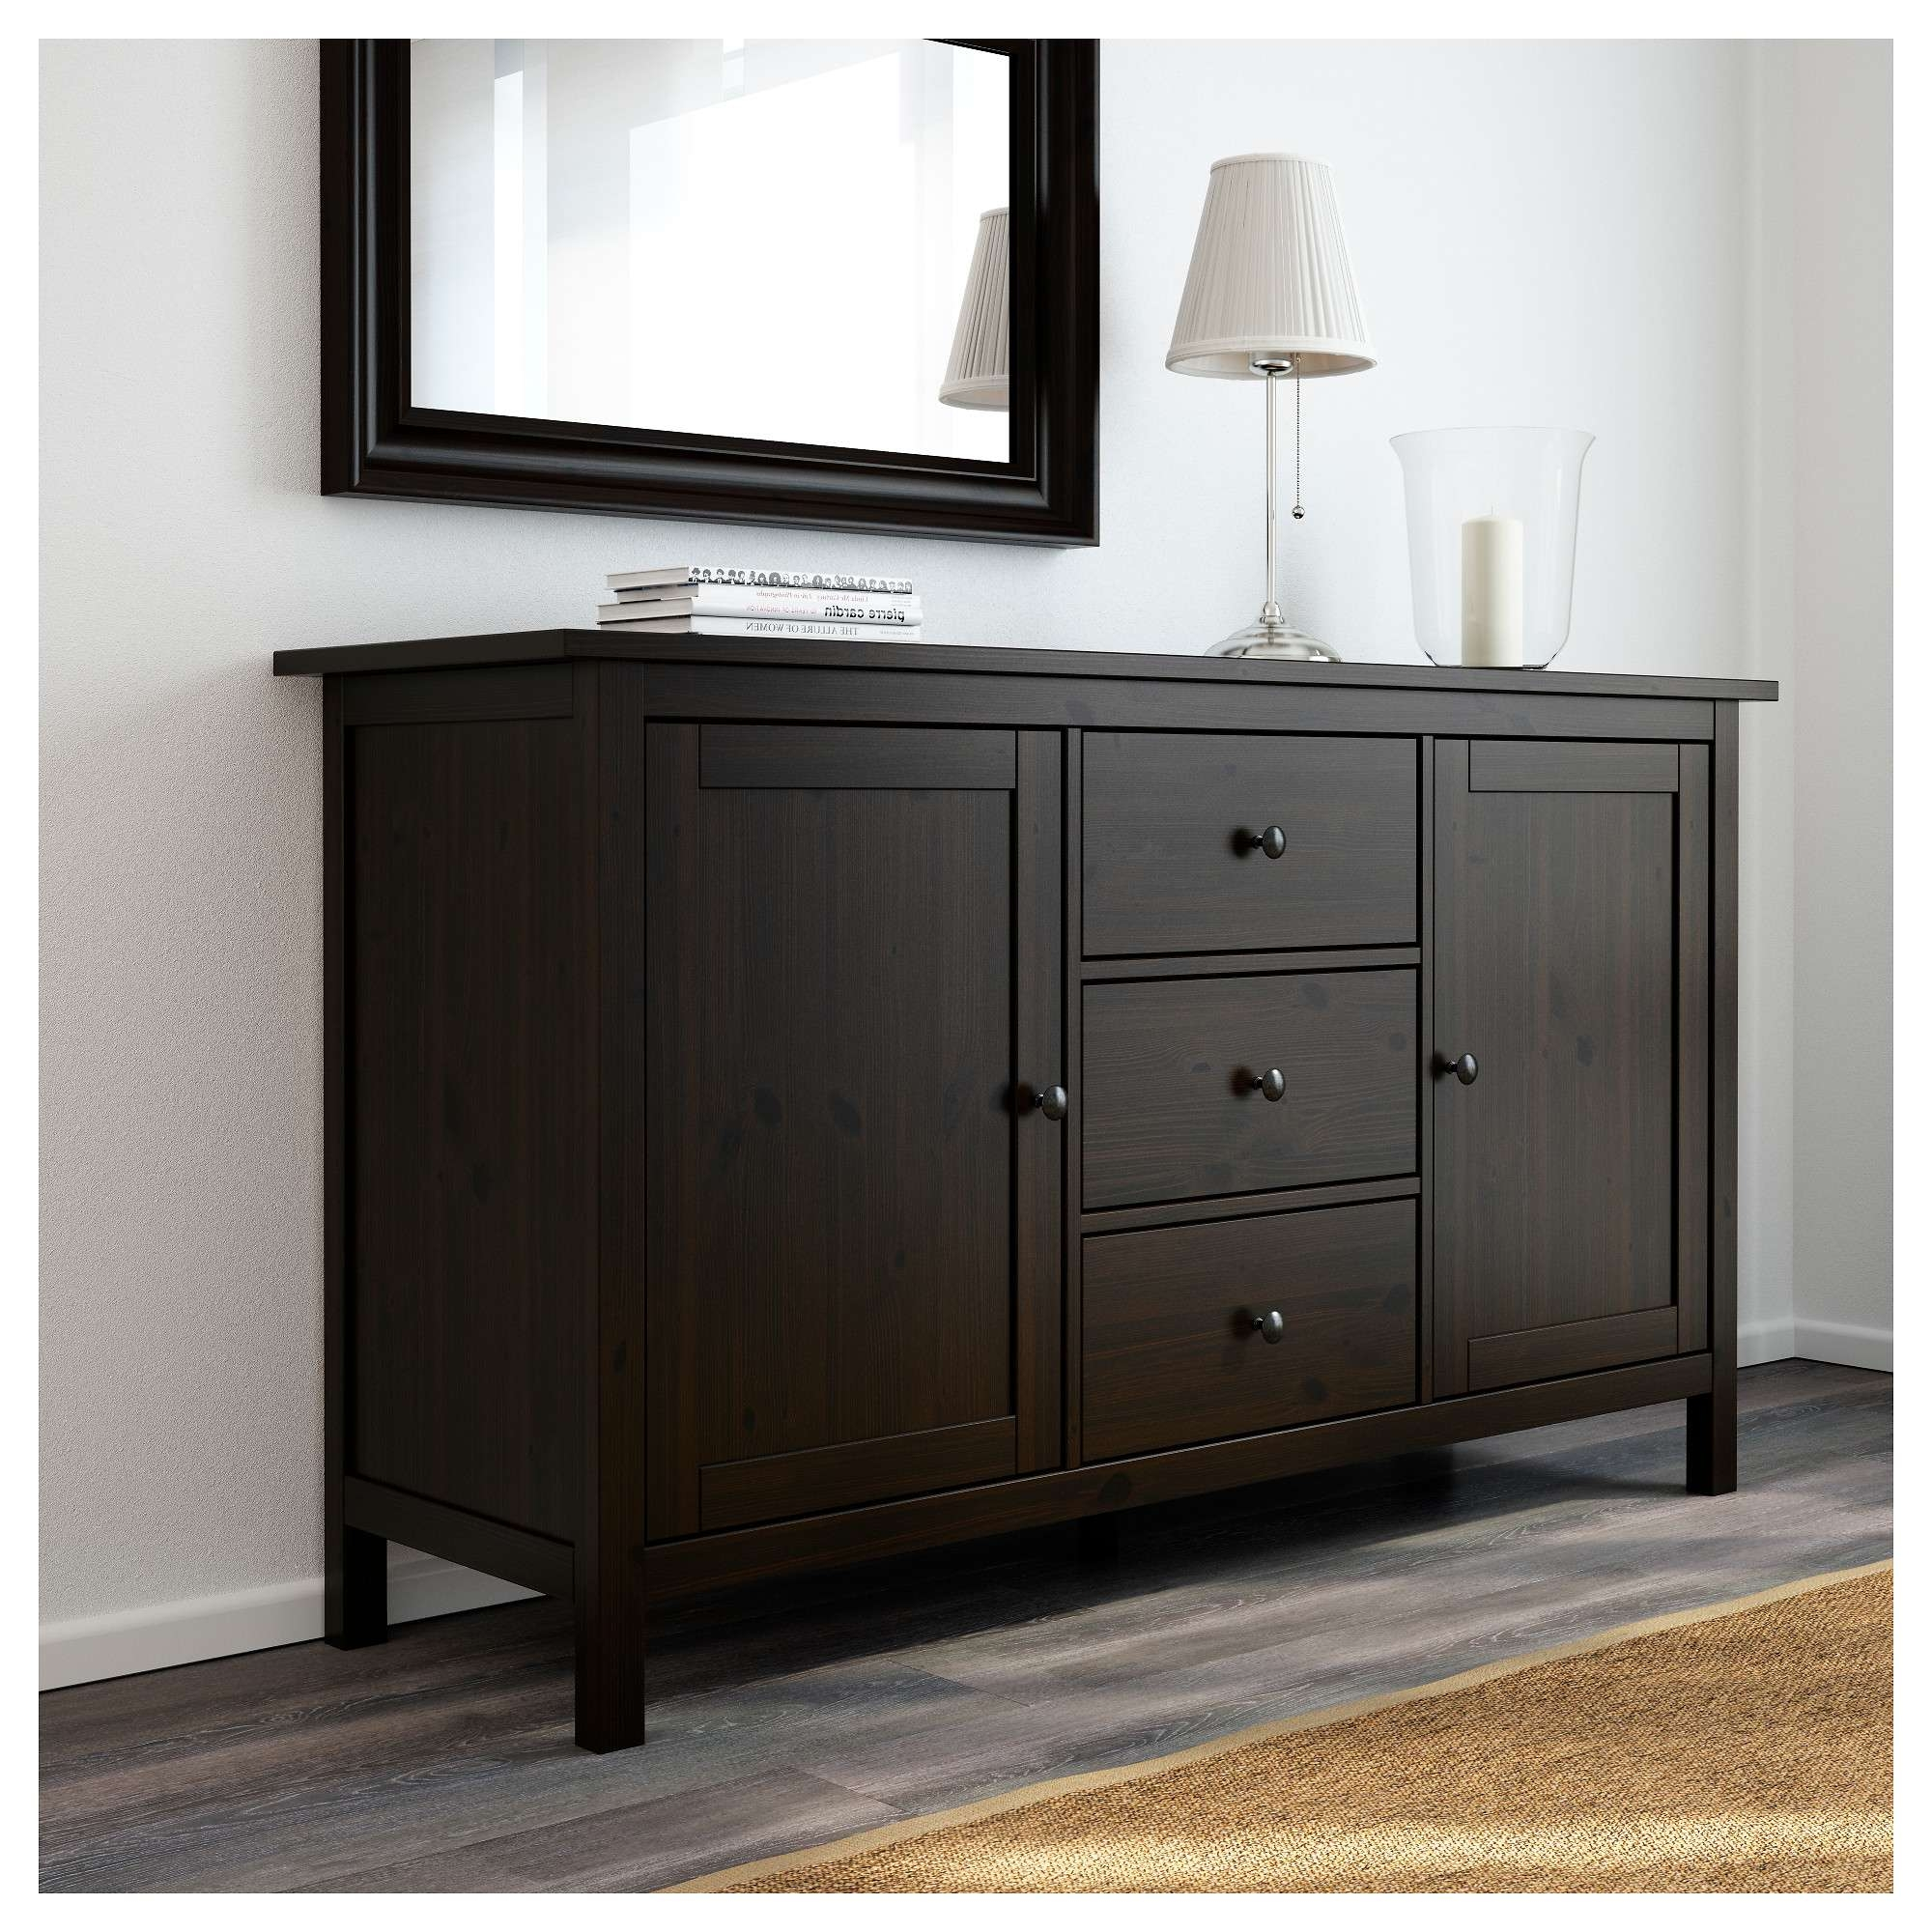 Hemnes Sideboard Black Brown 157X88 Cm – Ikea Pertaining To Dark Wood Sideboards (View 6 of 20)